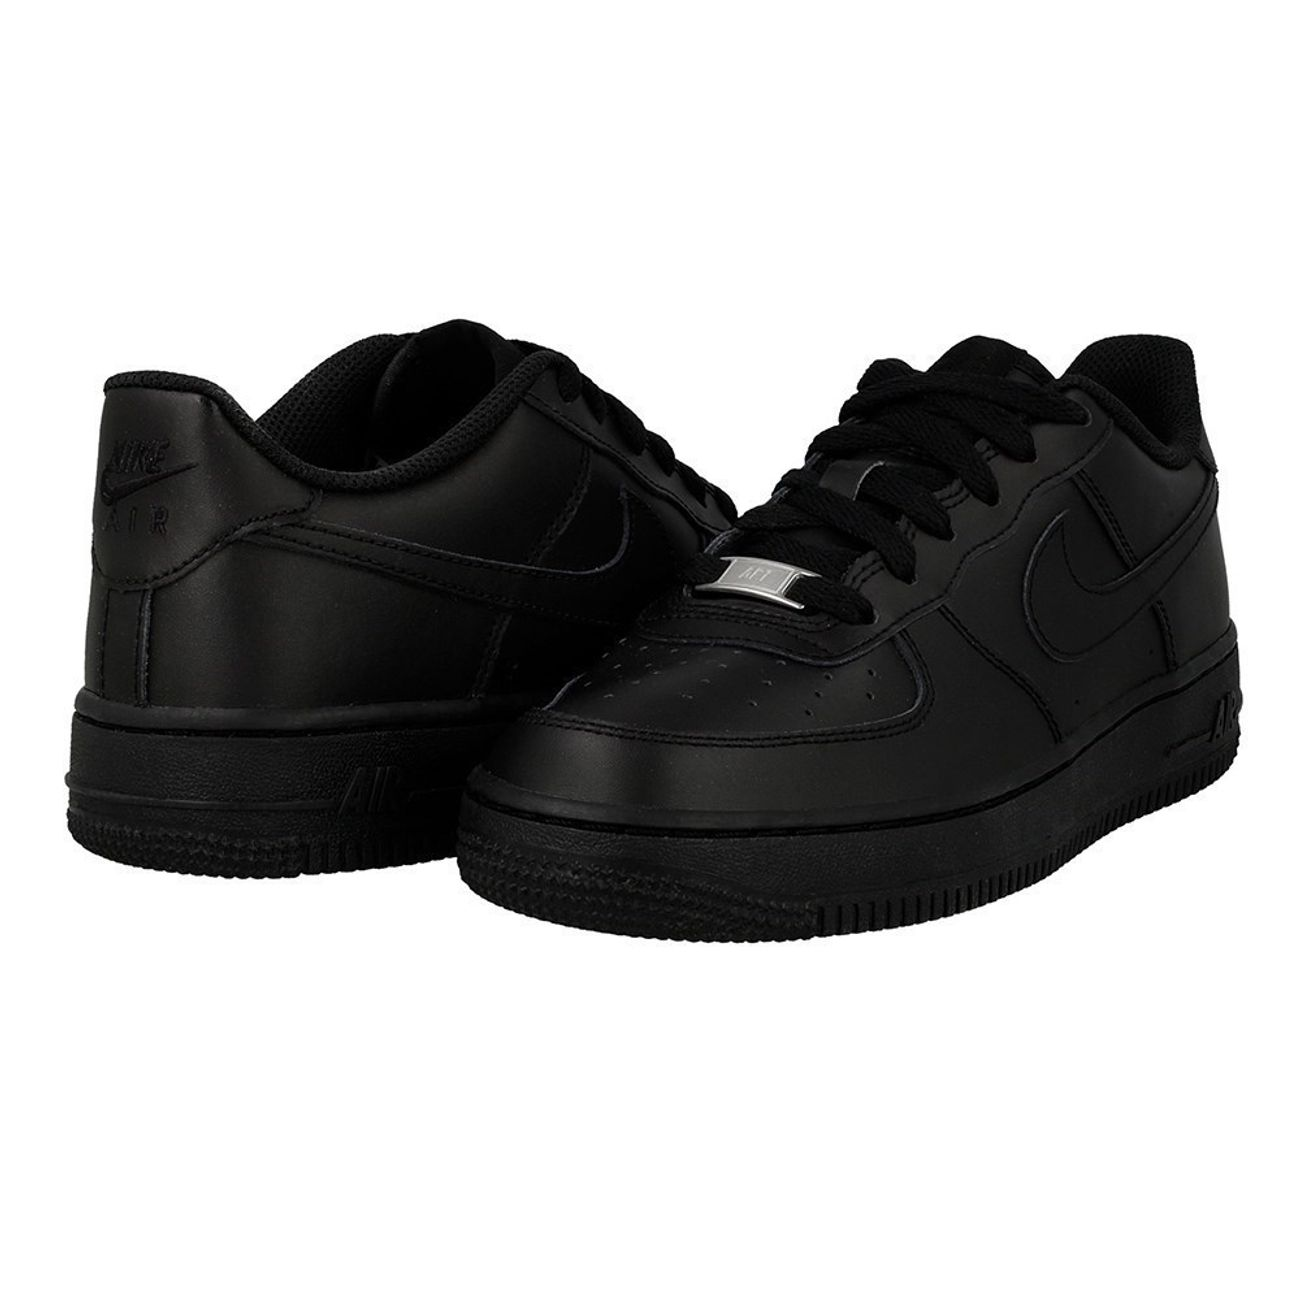 Mode Lifestyle femme NIKE Chaussures Air Force 1 Low Black h16